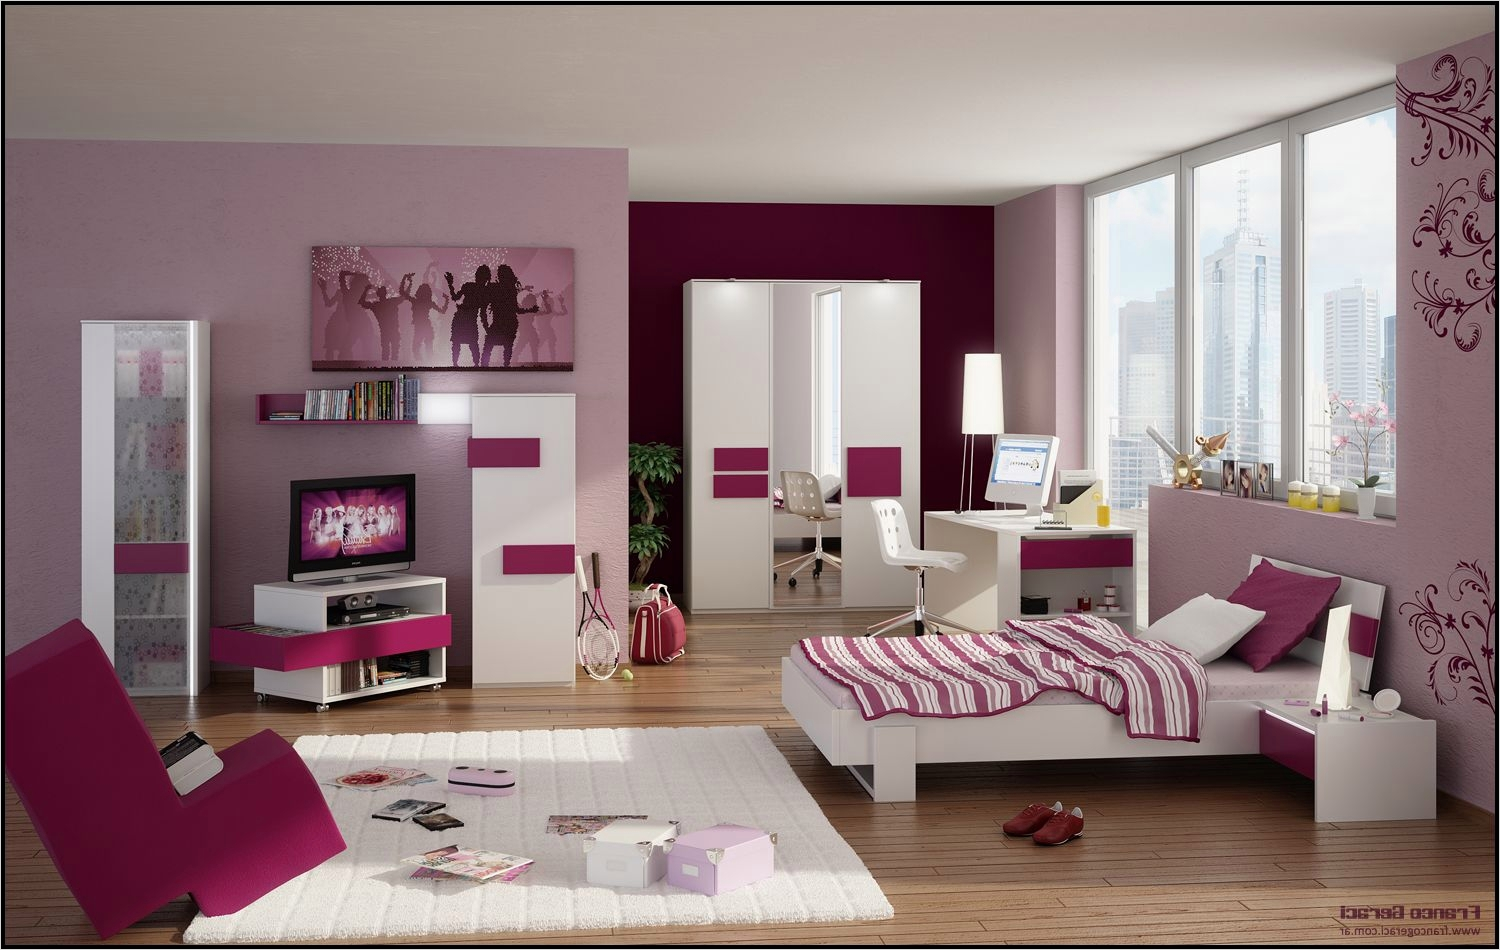 42 Stylish Bedrooms for Teenage Girls 74 Bedroom Design Stylish and Sweet Bedroom for Young Girls 2